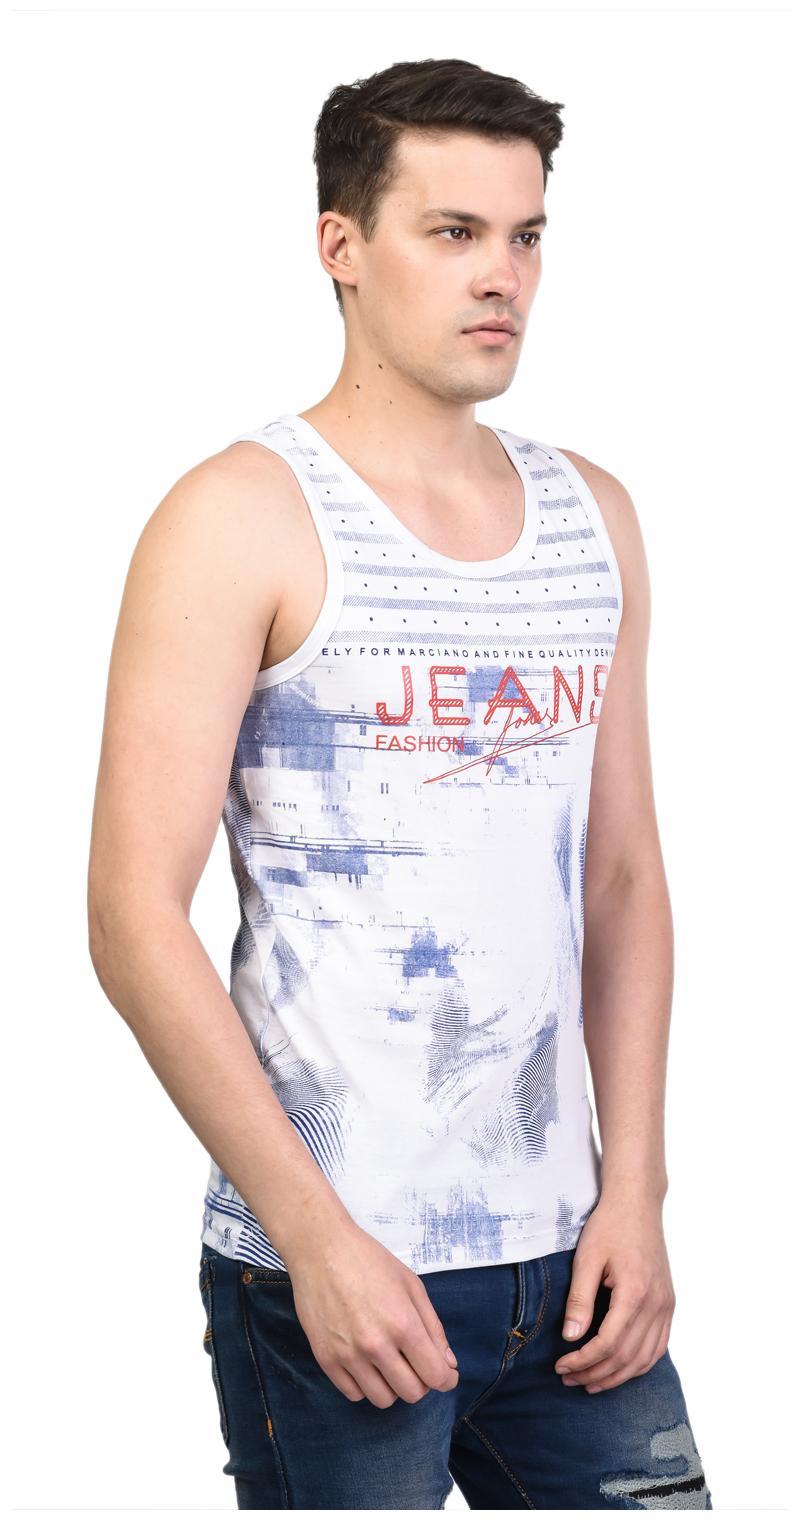 d0e0a519e3994 Buy White Moon Men s Cotton Printed Multi Sleeveless Gym Wear Vest  Article 3001 (pack of 3) Online at Low Prices in India - Paytmmall.com